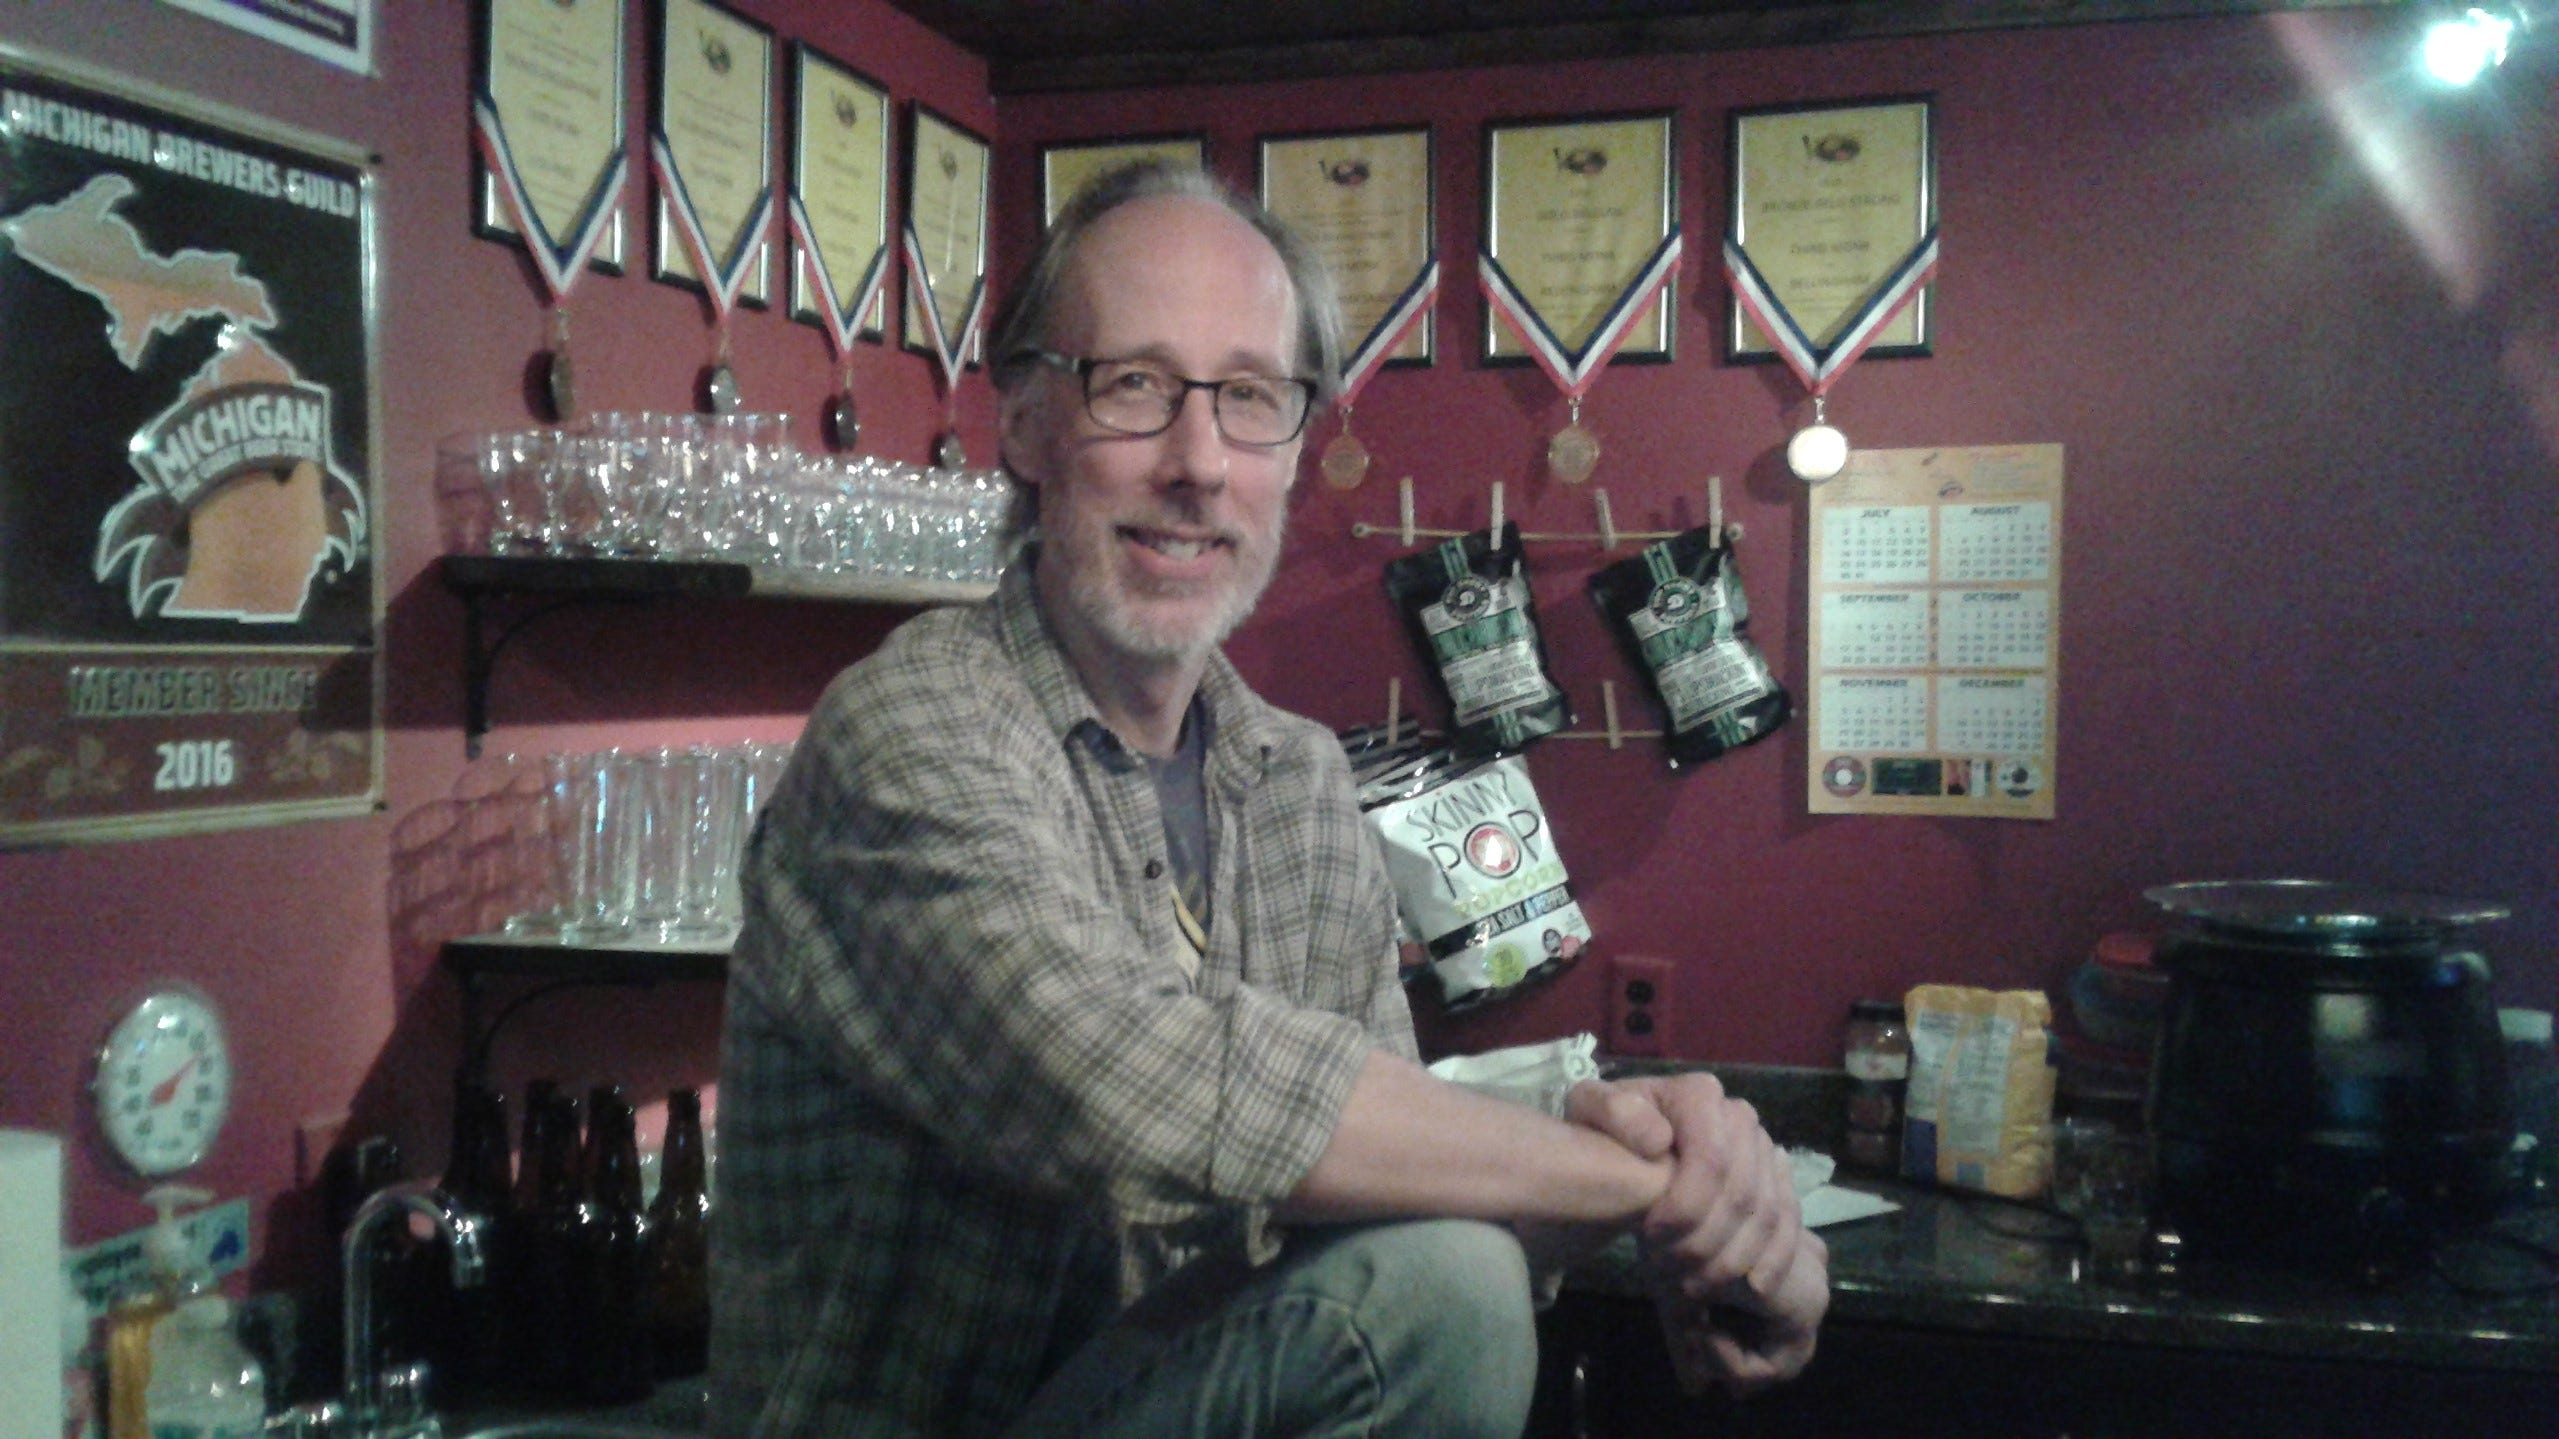 Jeff Robinson says he pays more in music license fees than he does excise tax for the beer he brews.